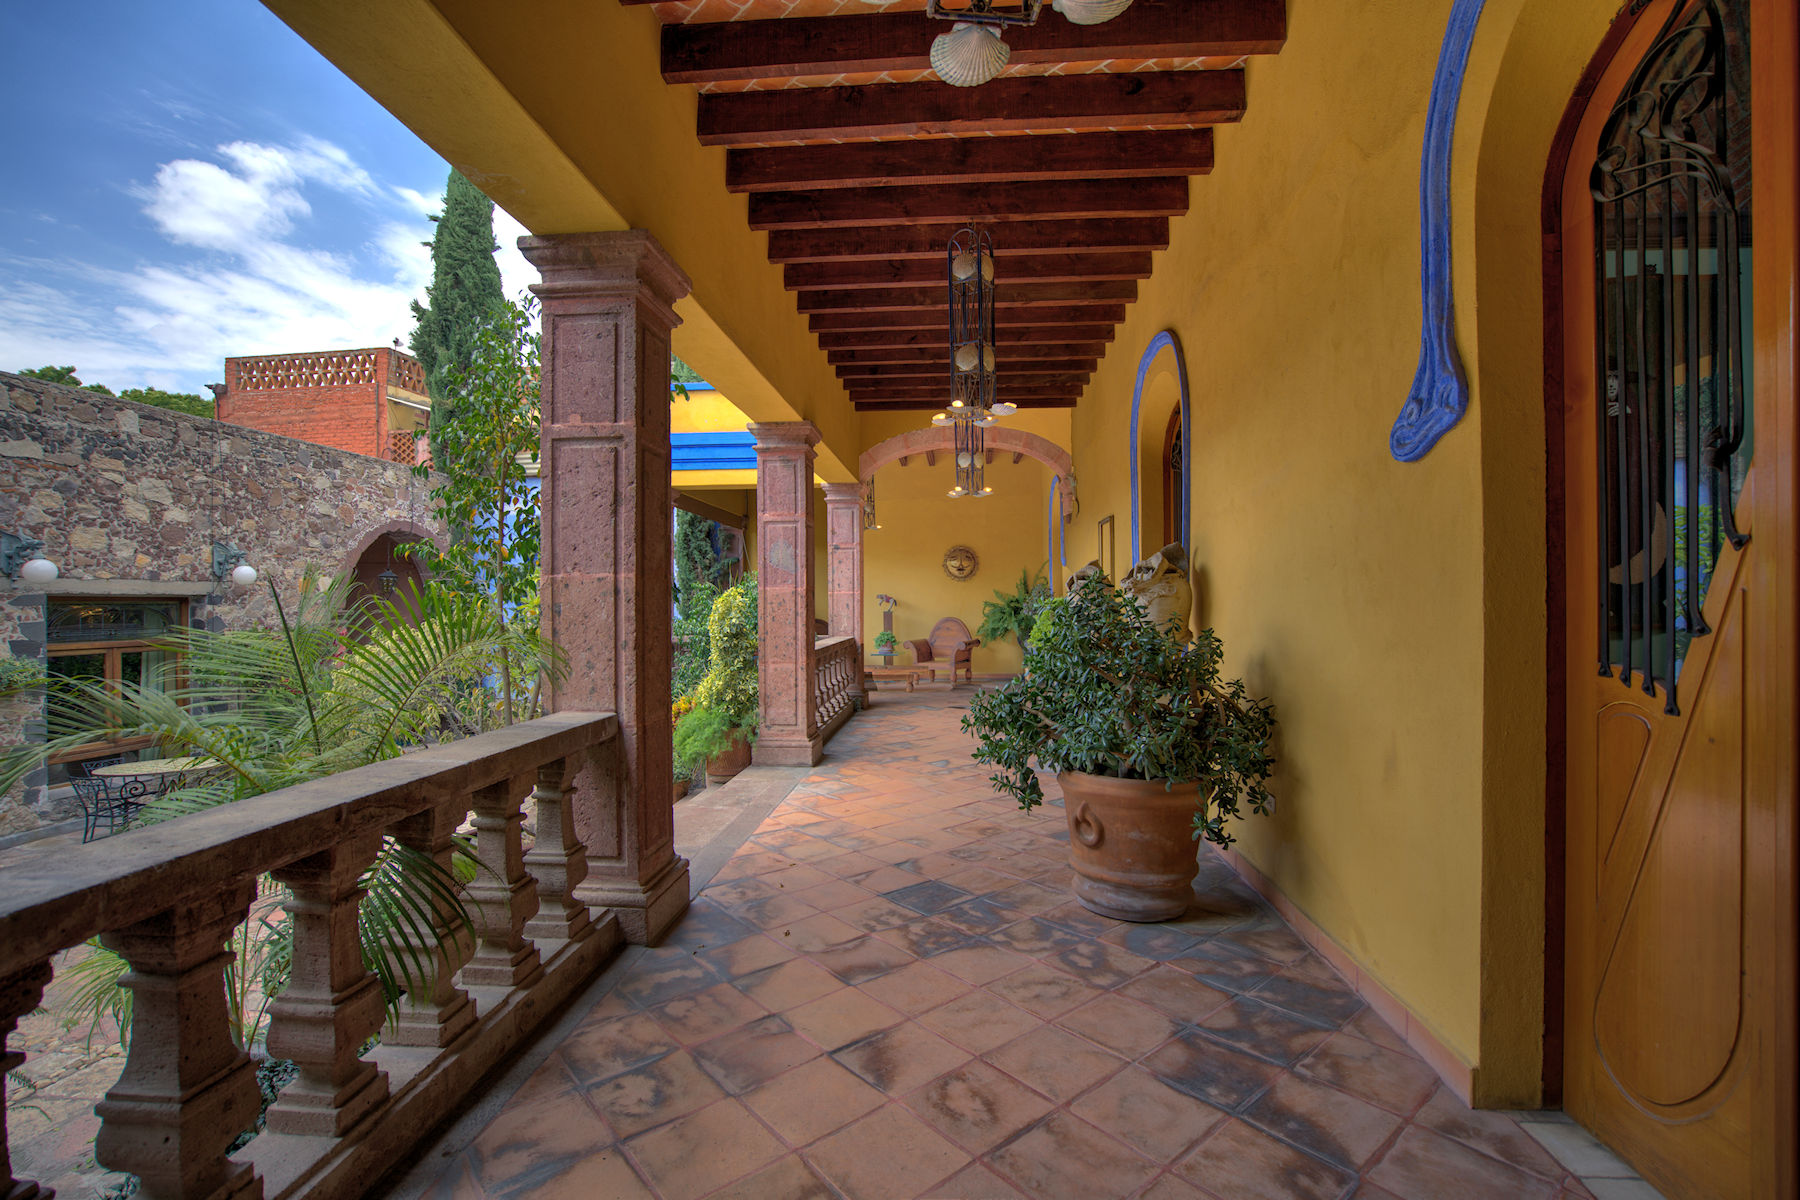 Additional photo for property listing at CASA HERNANDEZ MACIAS HERNANDEZ MACIAS Other Guanajuato, Guanajuato 37700 Mexico